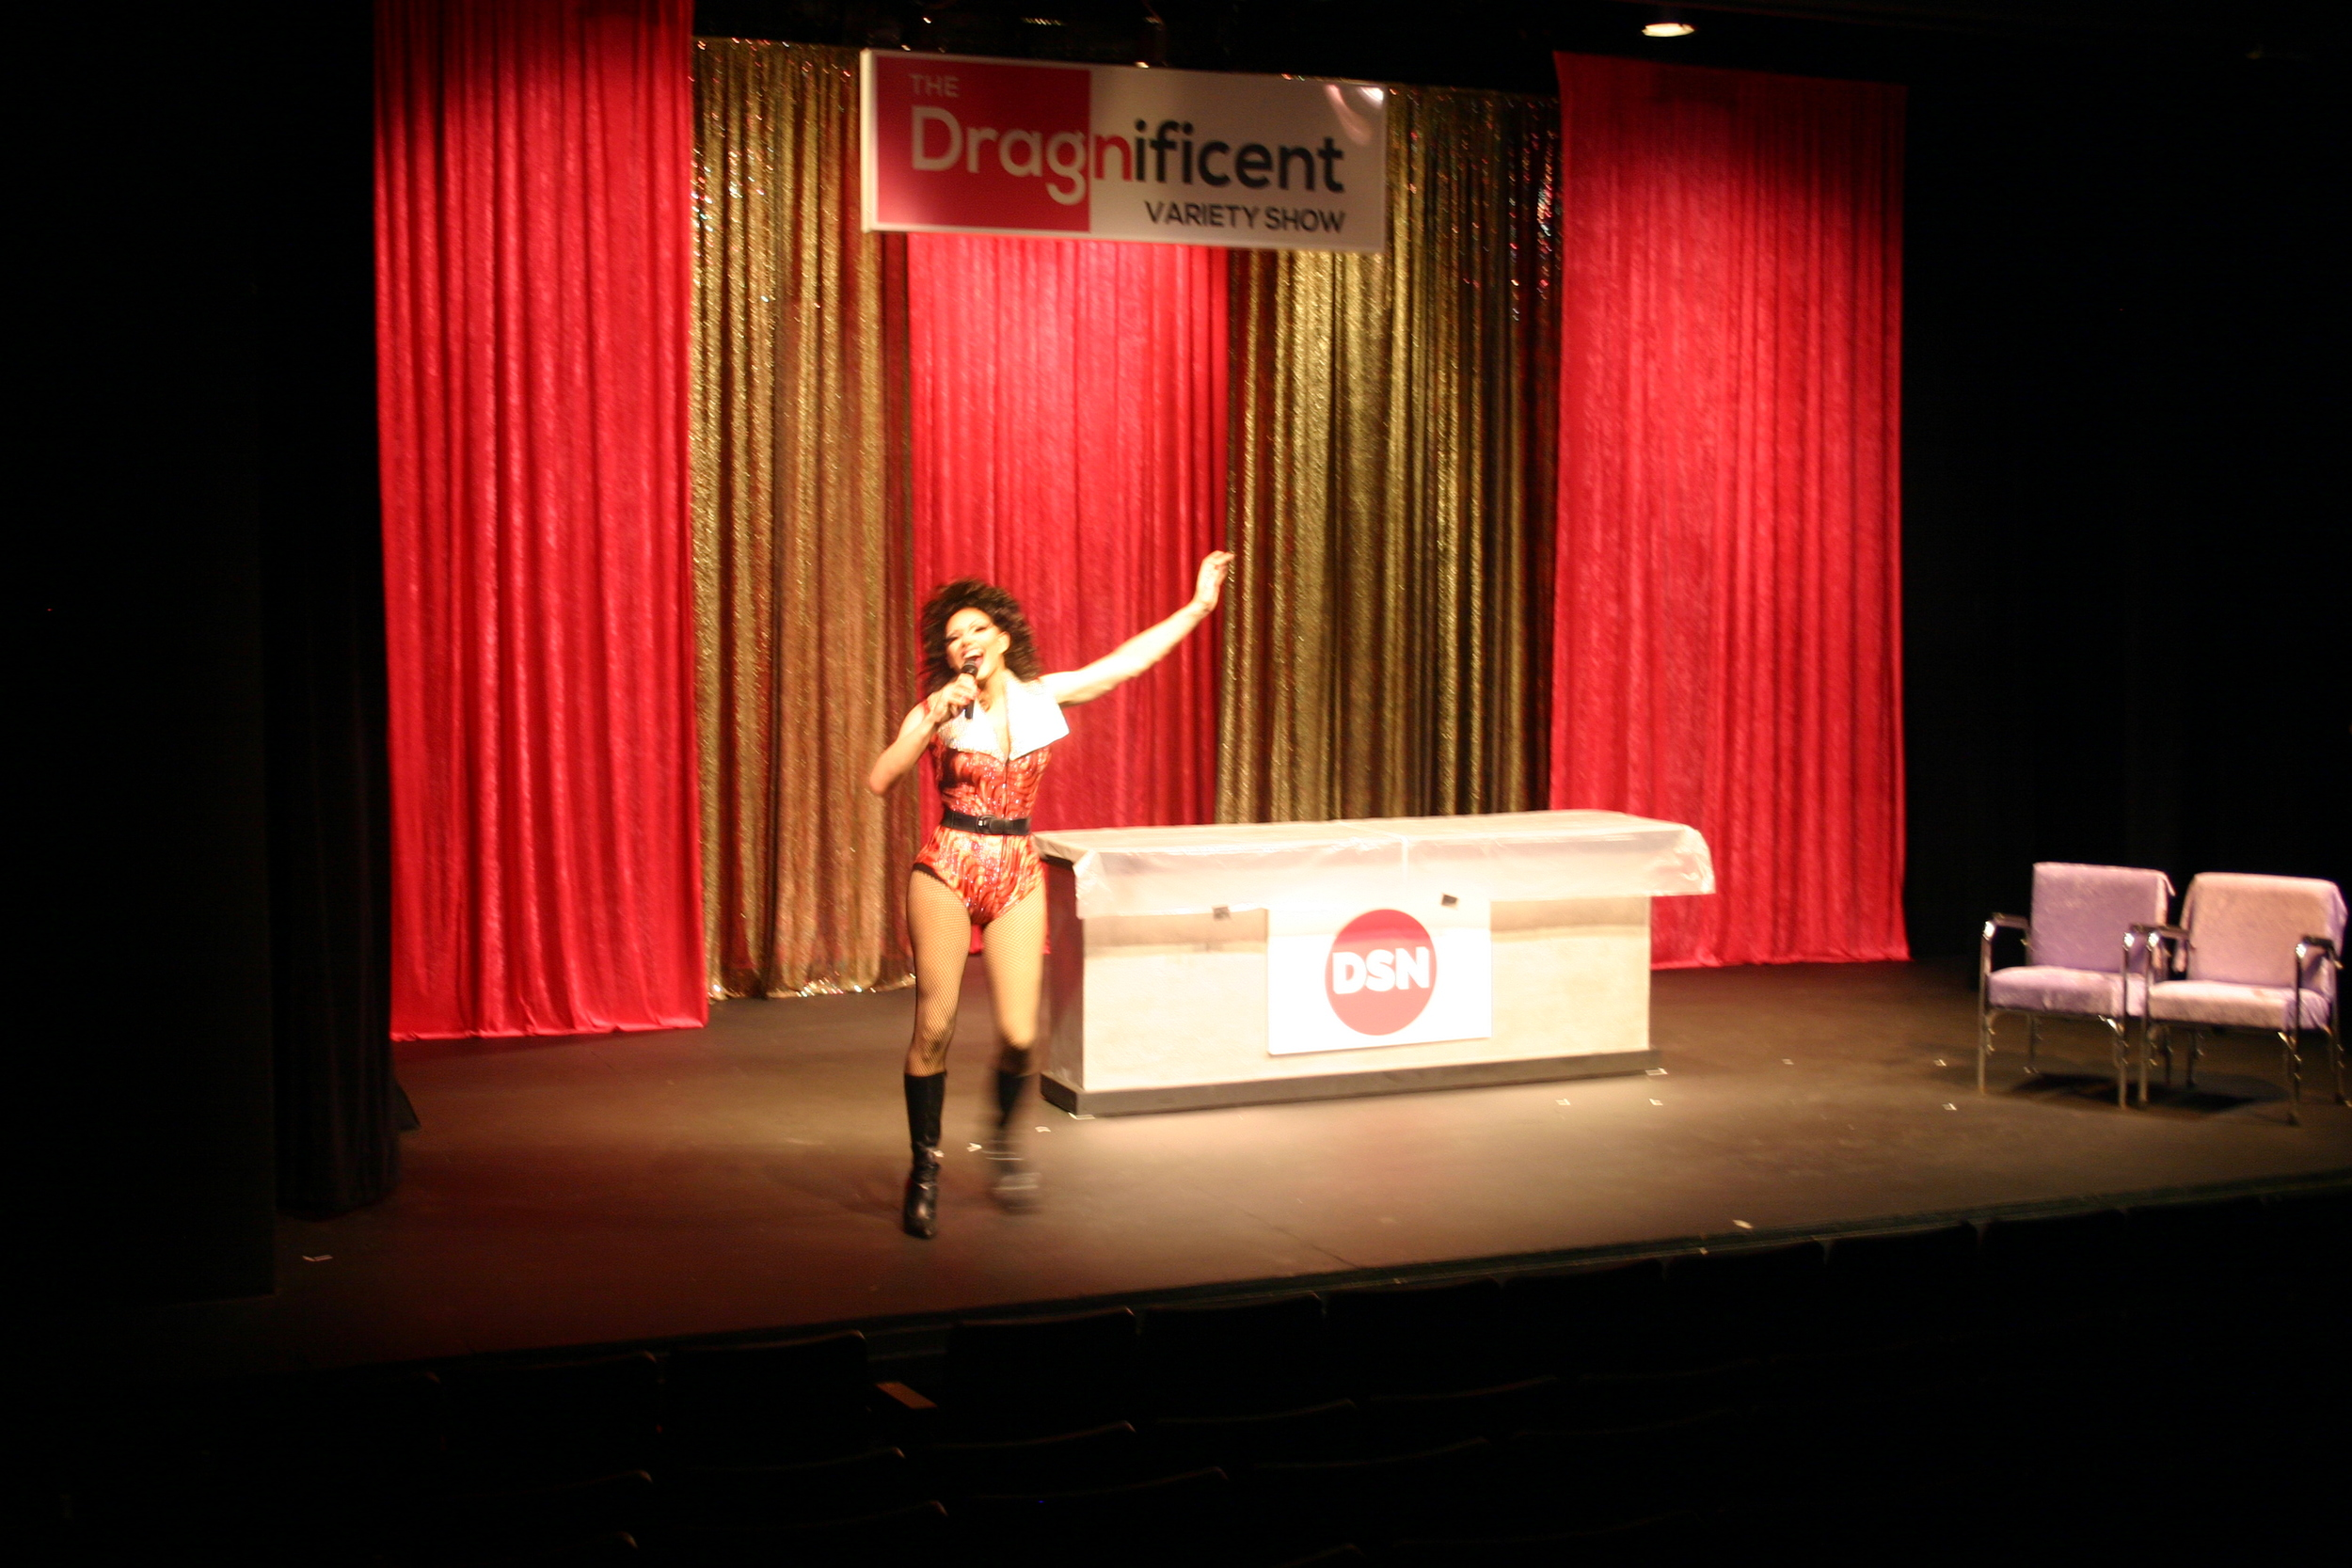 Vocal Warmup for Bella DuBalle at DragNificent Variety Show 2015    Copyright 2015 Out901.com. All rights reserved. This material may not be published, broadcast, rewritten, or redistributed.    Picture by Whitney Hardy